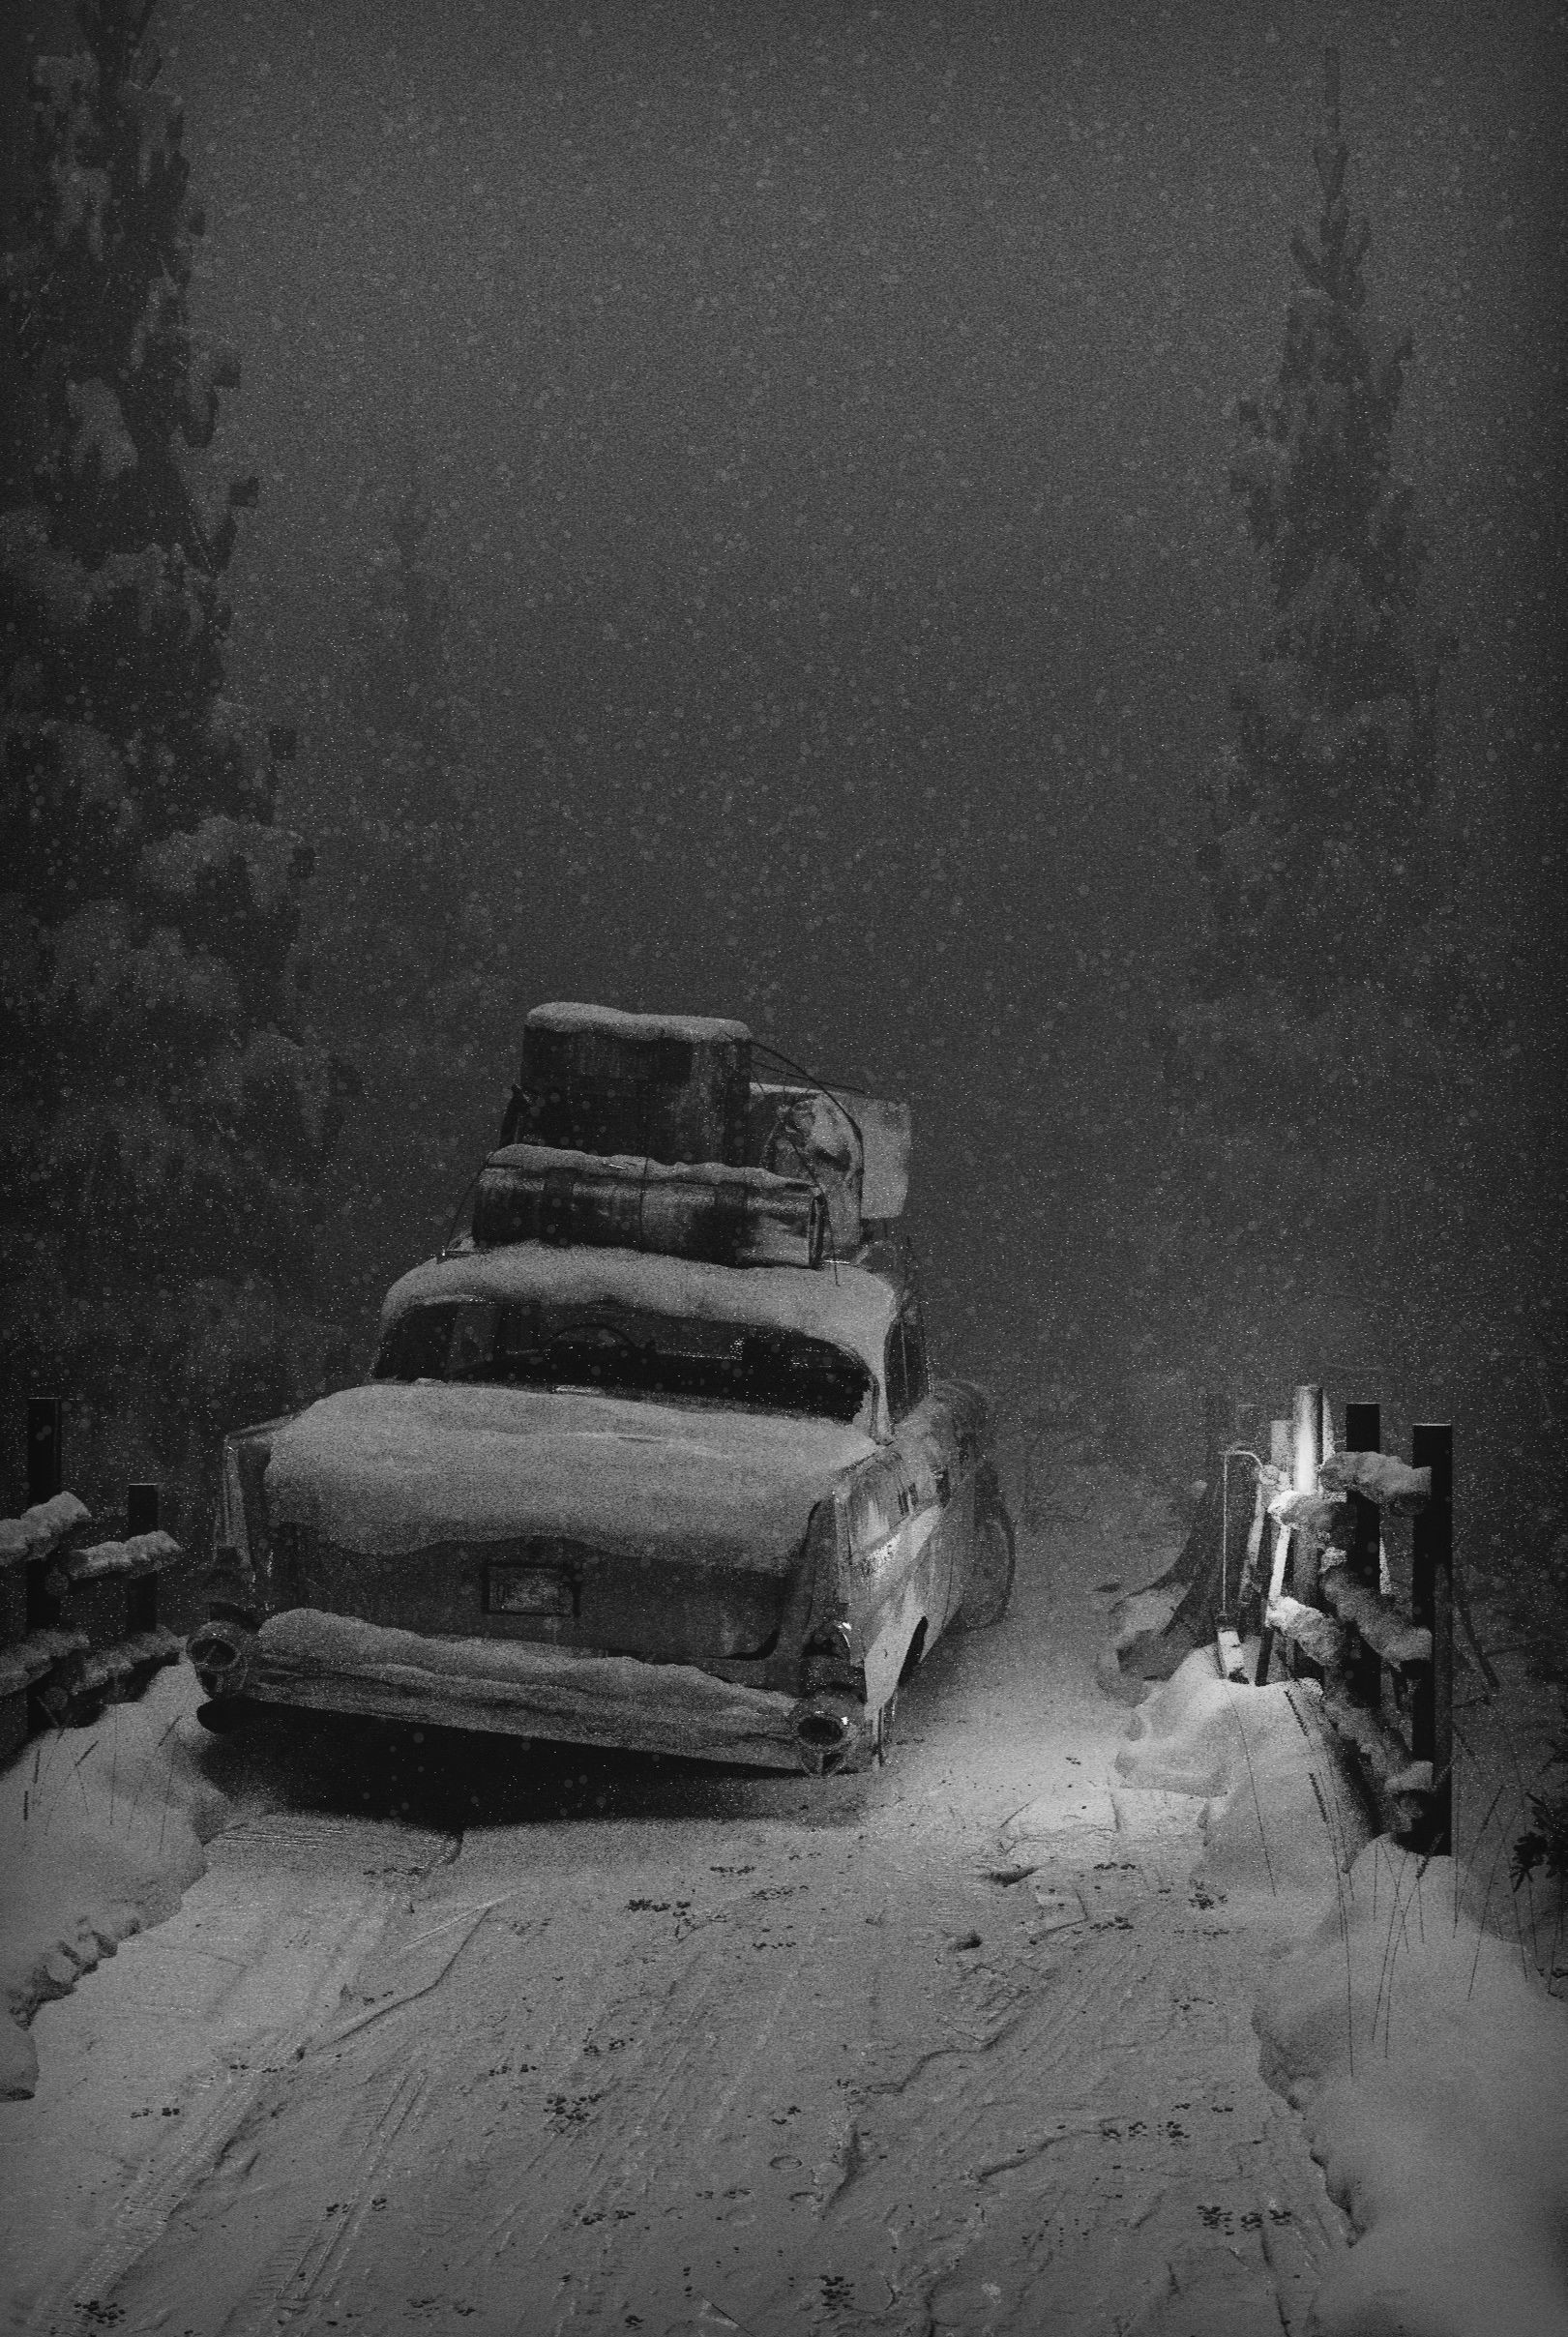 James o brien vadim ignatiev foggy winter old